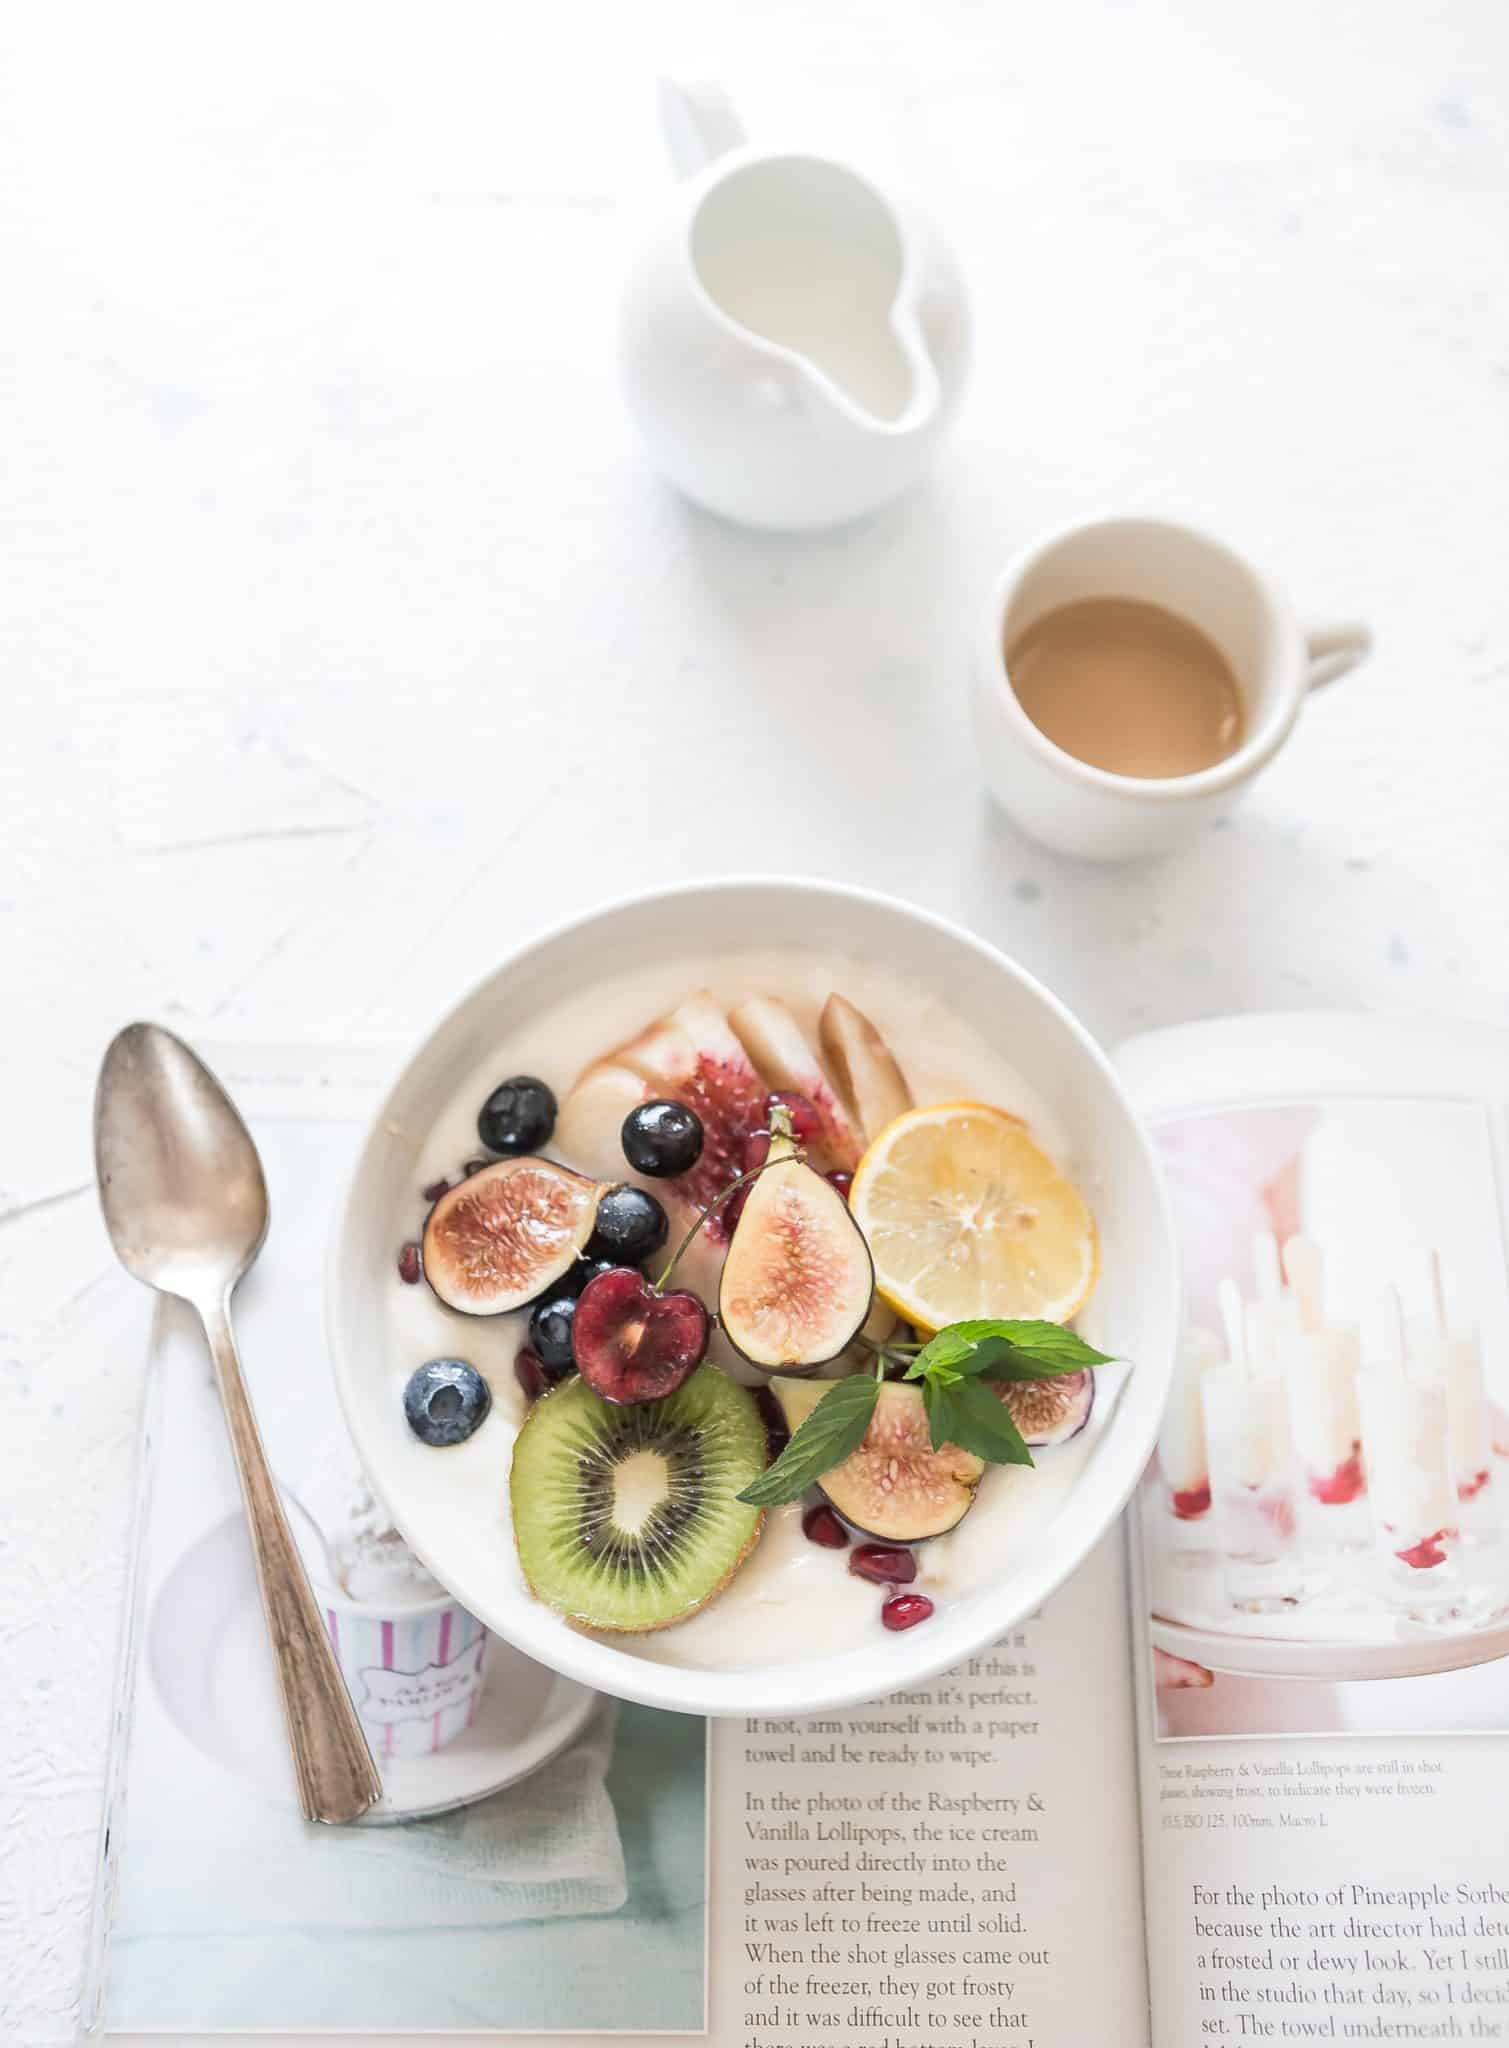 A flatlay photograph of a bowl of fruit in cream sitting on a cookbook, coffee and creamer on table